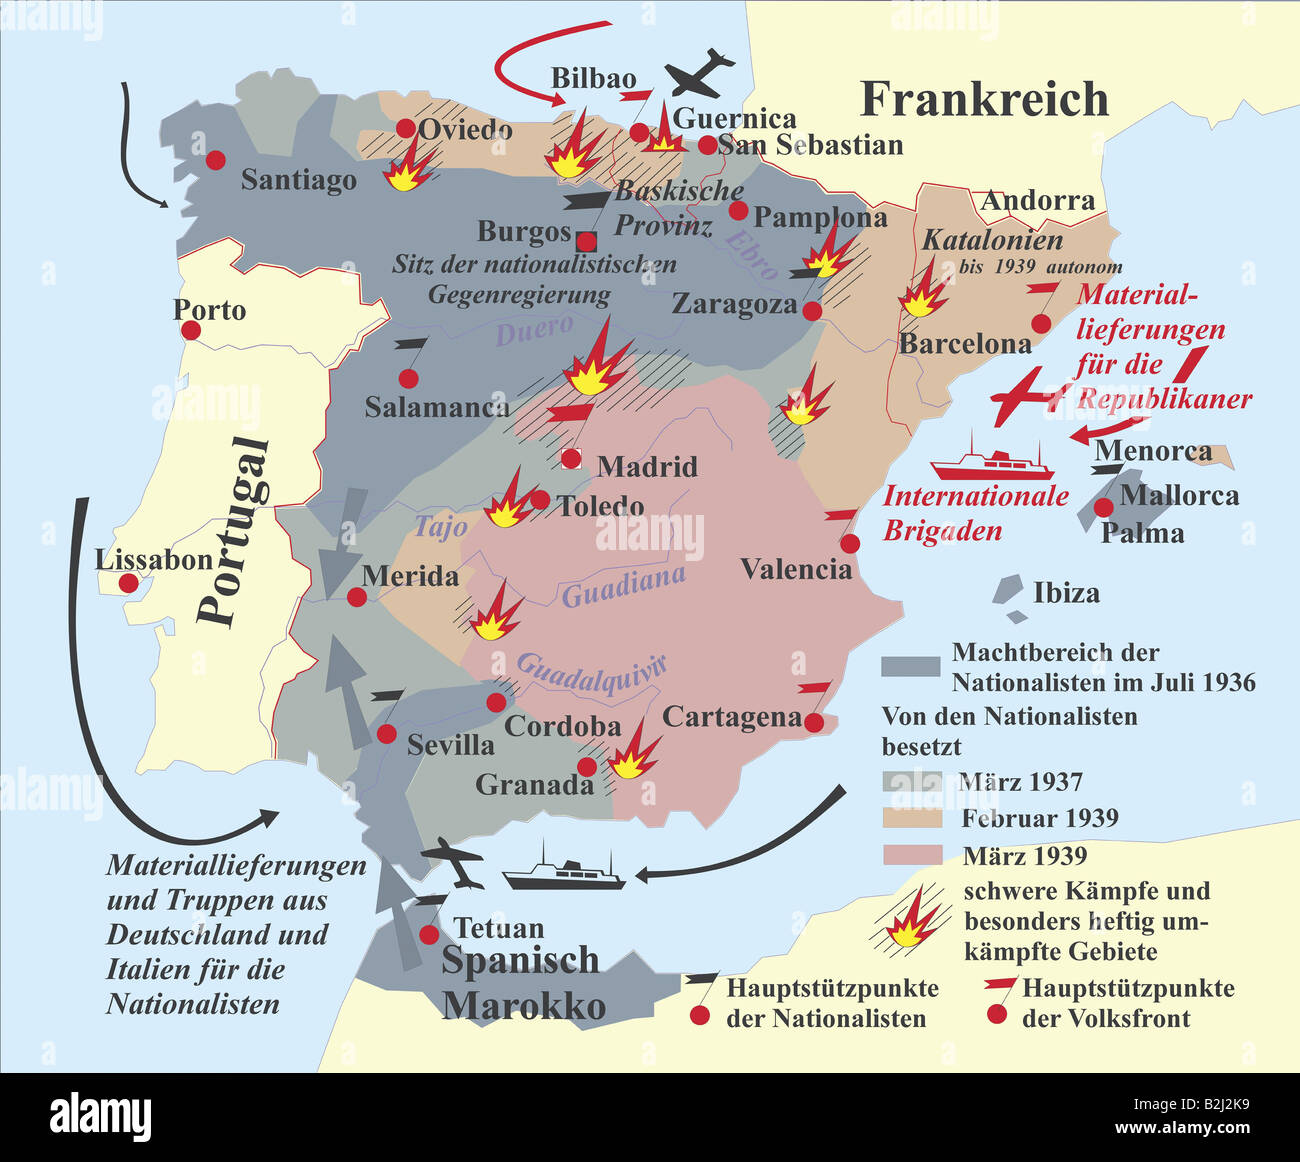 Cartography Historical Maps Spain Civil War - Spain historical map